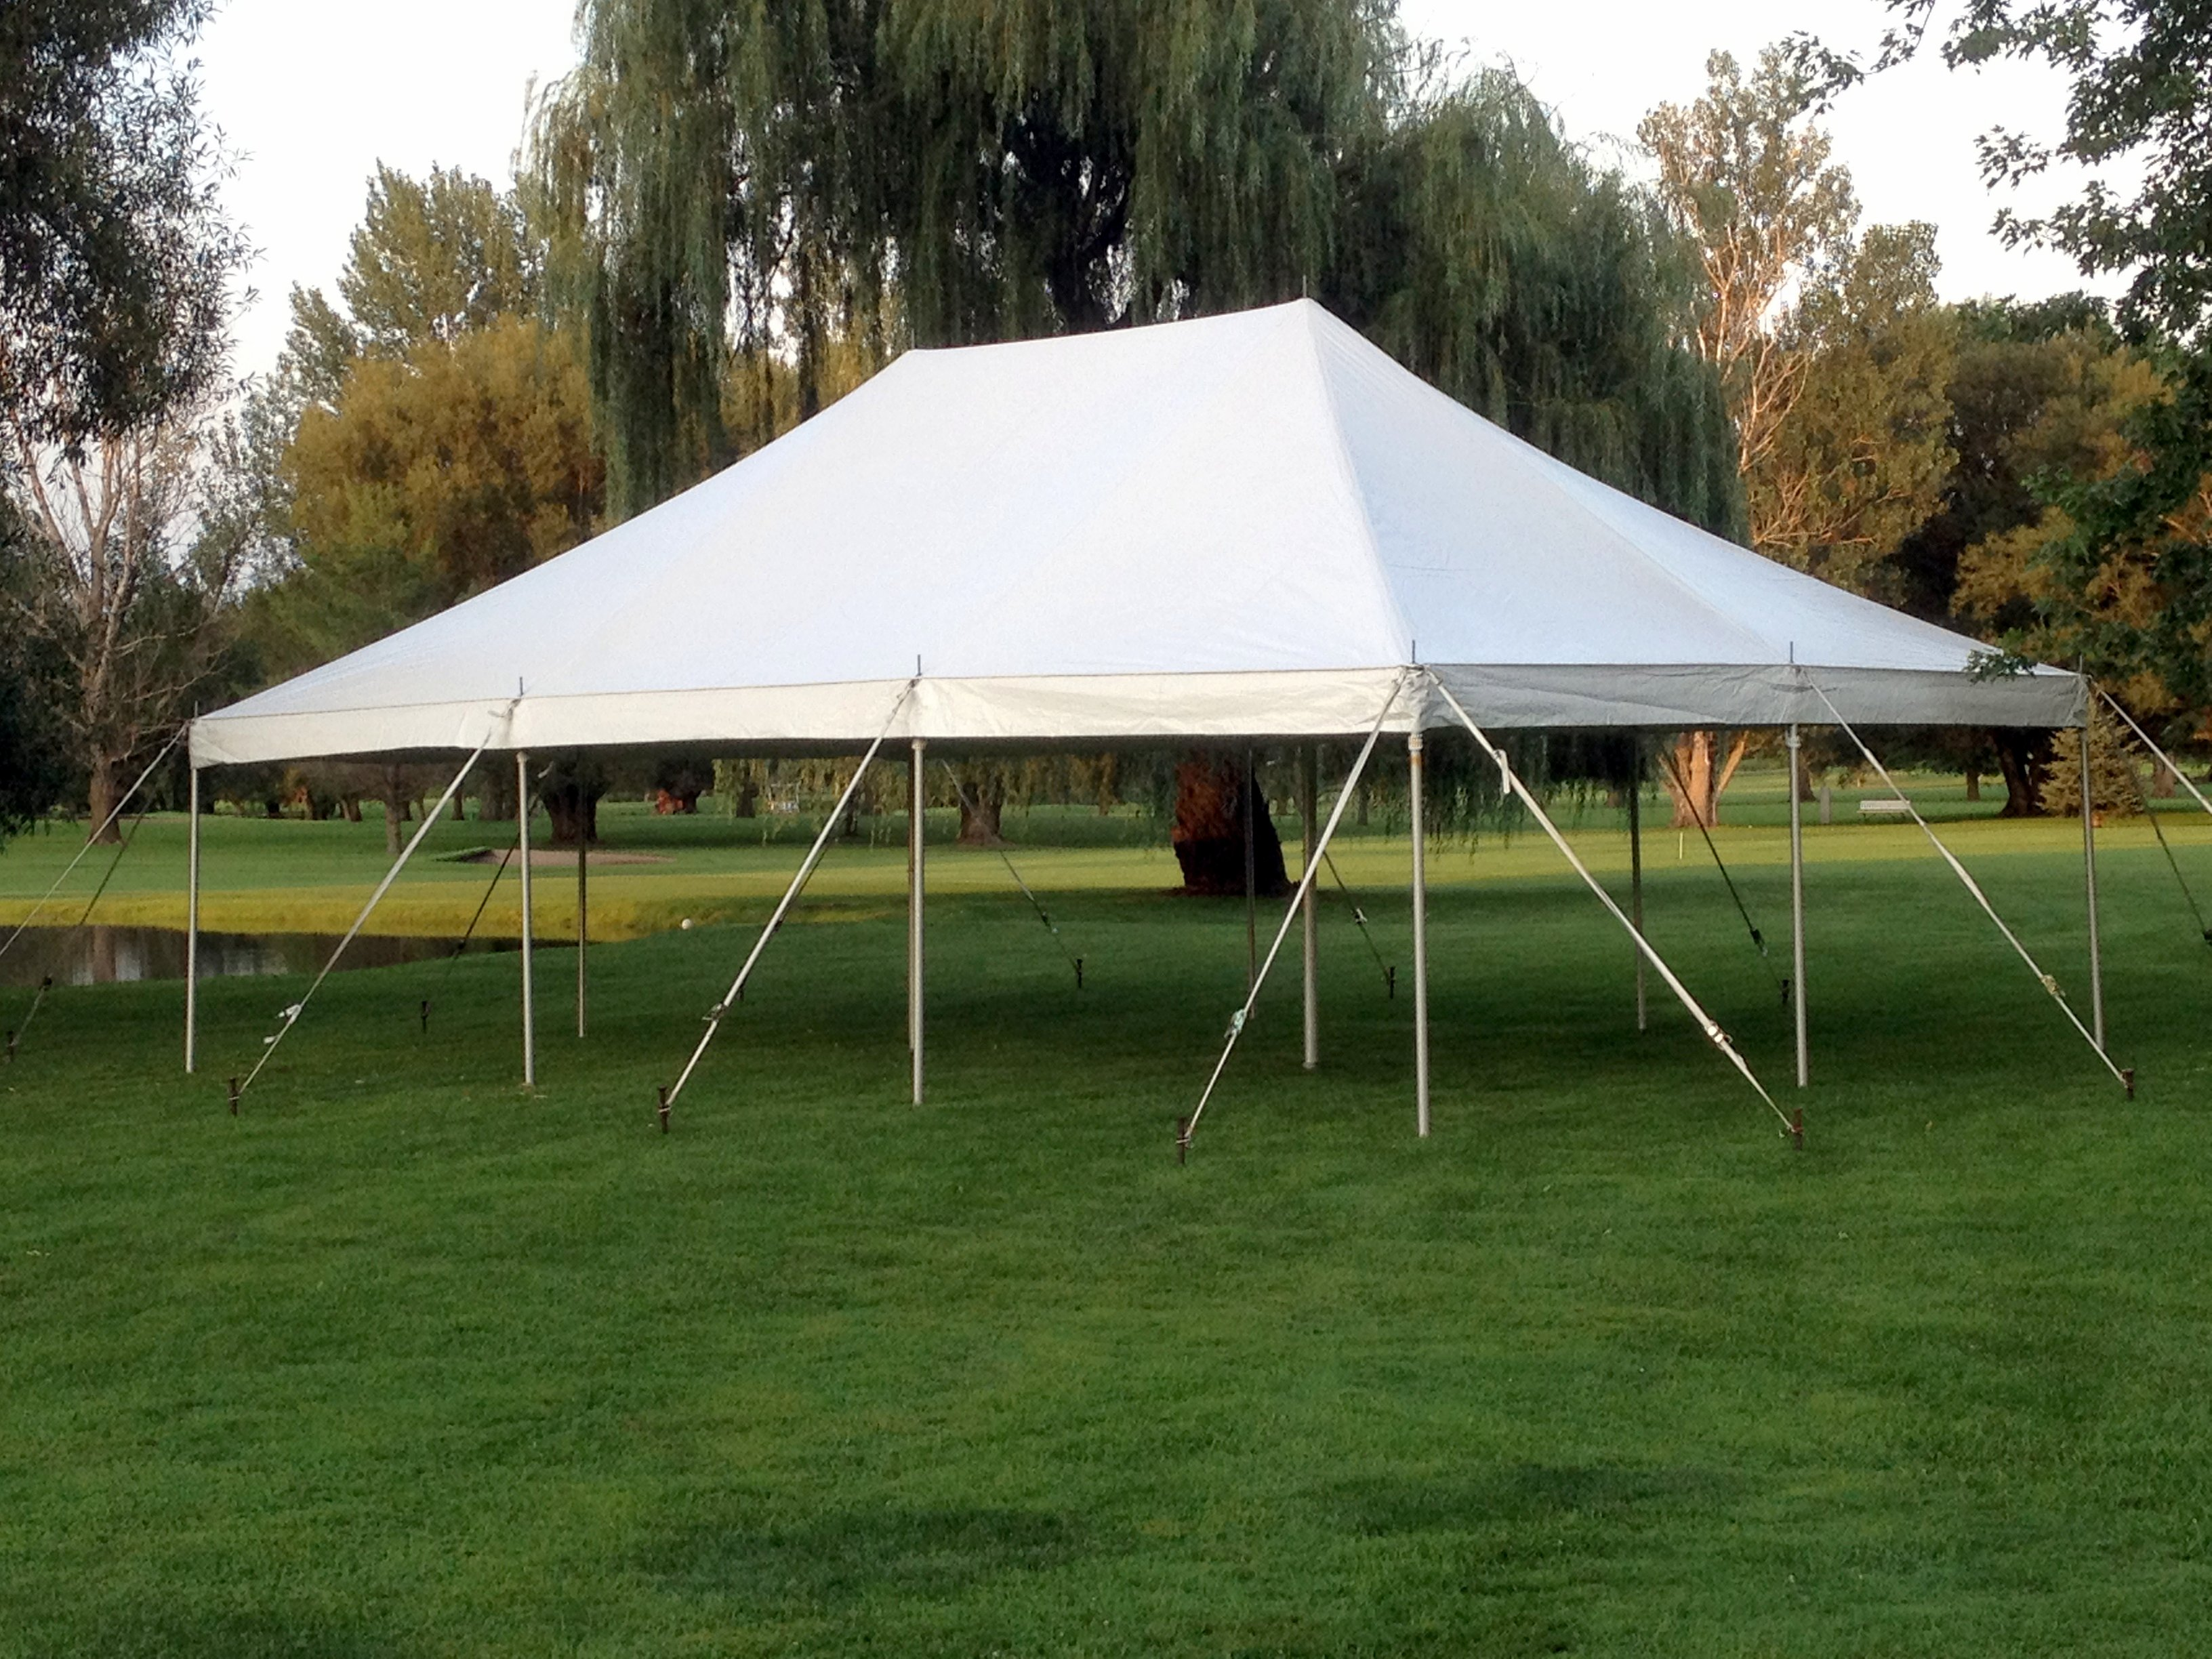 20u2032 x 30u2032 Pole Tent & 30u2032 X 60u2032 Pole Tent » Rainy Day Party Rentals